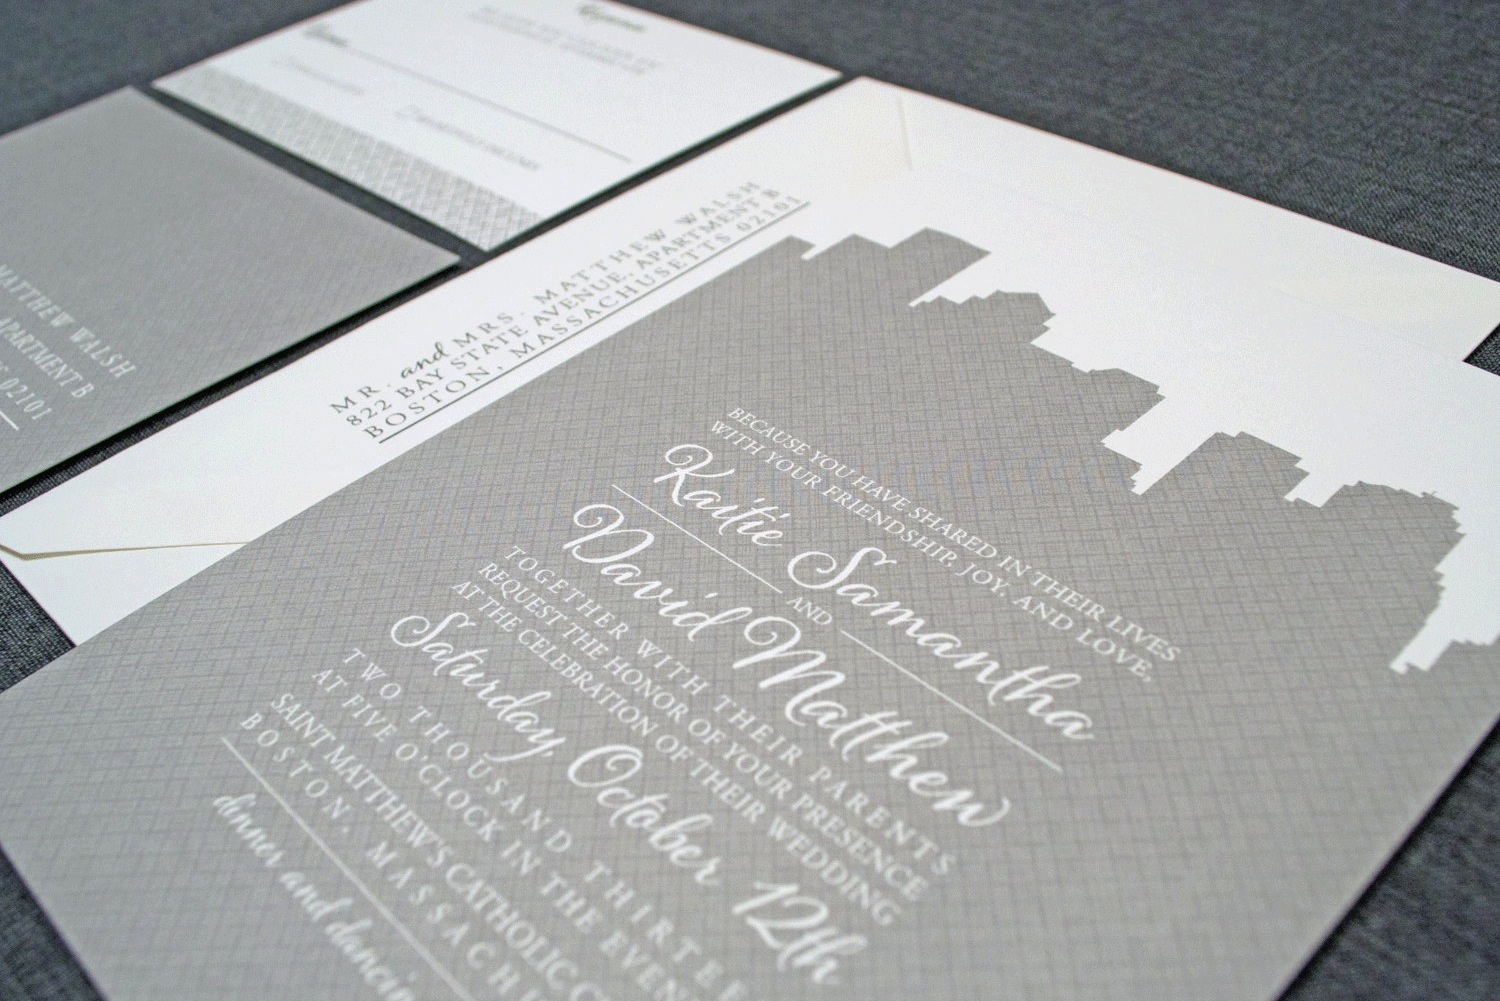 New-york-wedding-inspiration-handmade-etsy-weddings-modern-letterpress-invitations.original